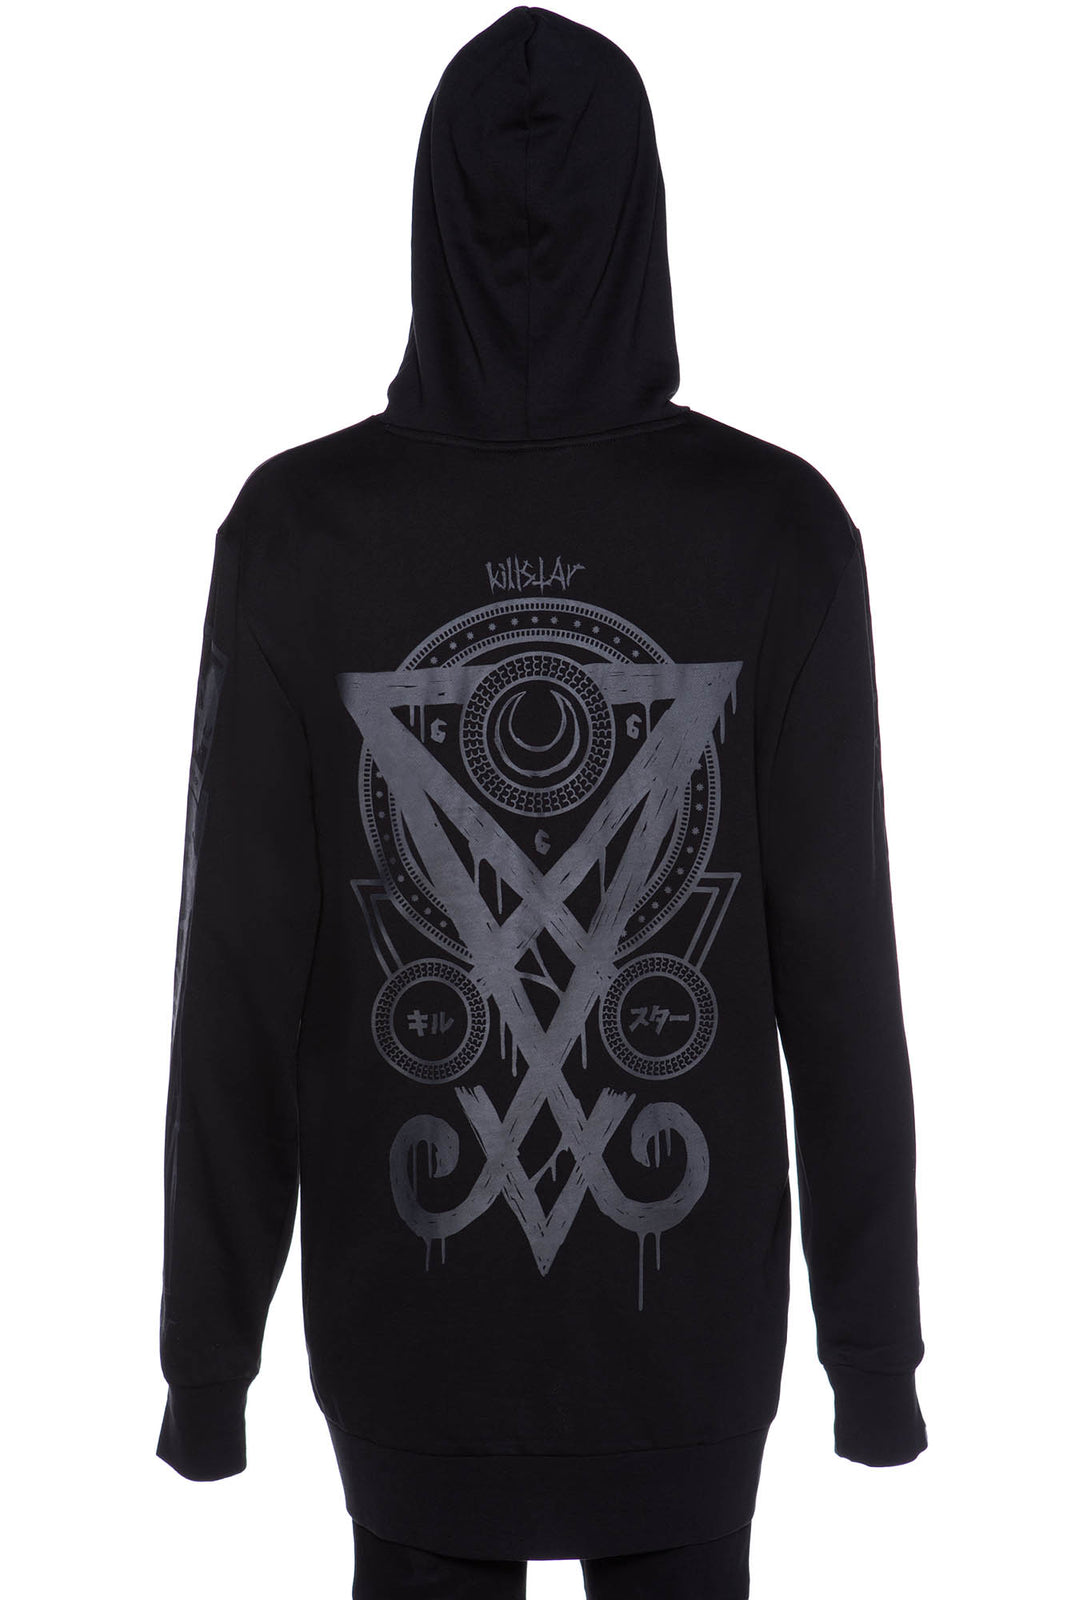 Wake from Death Hoodie